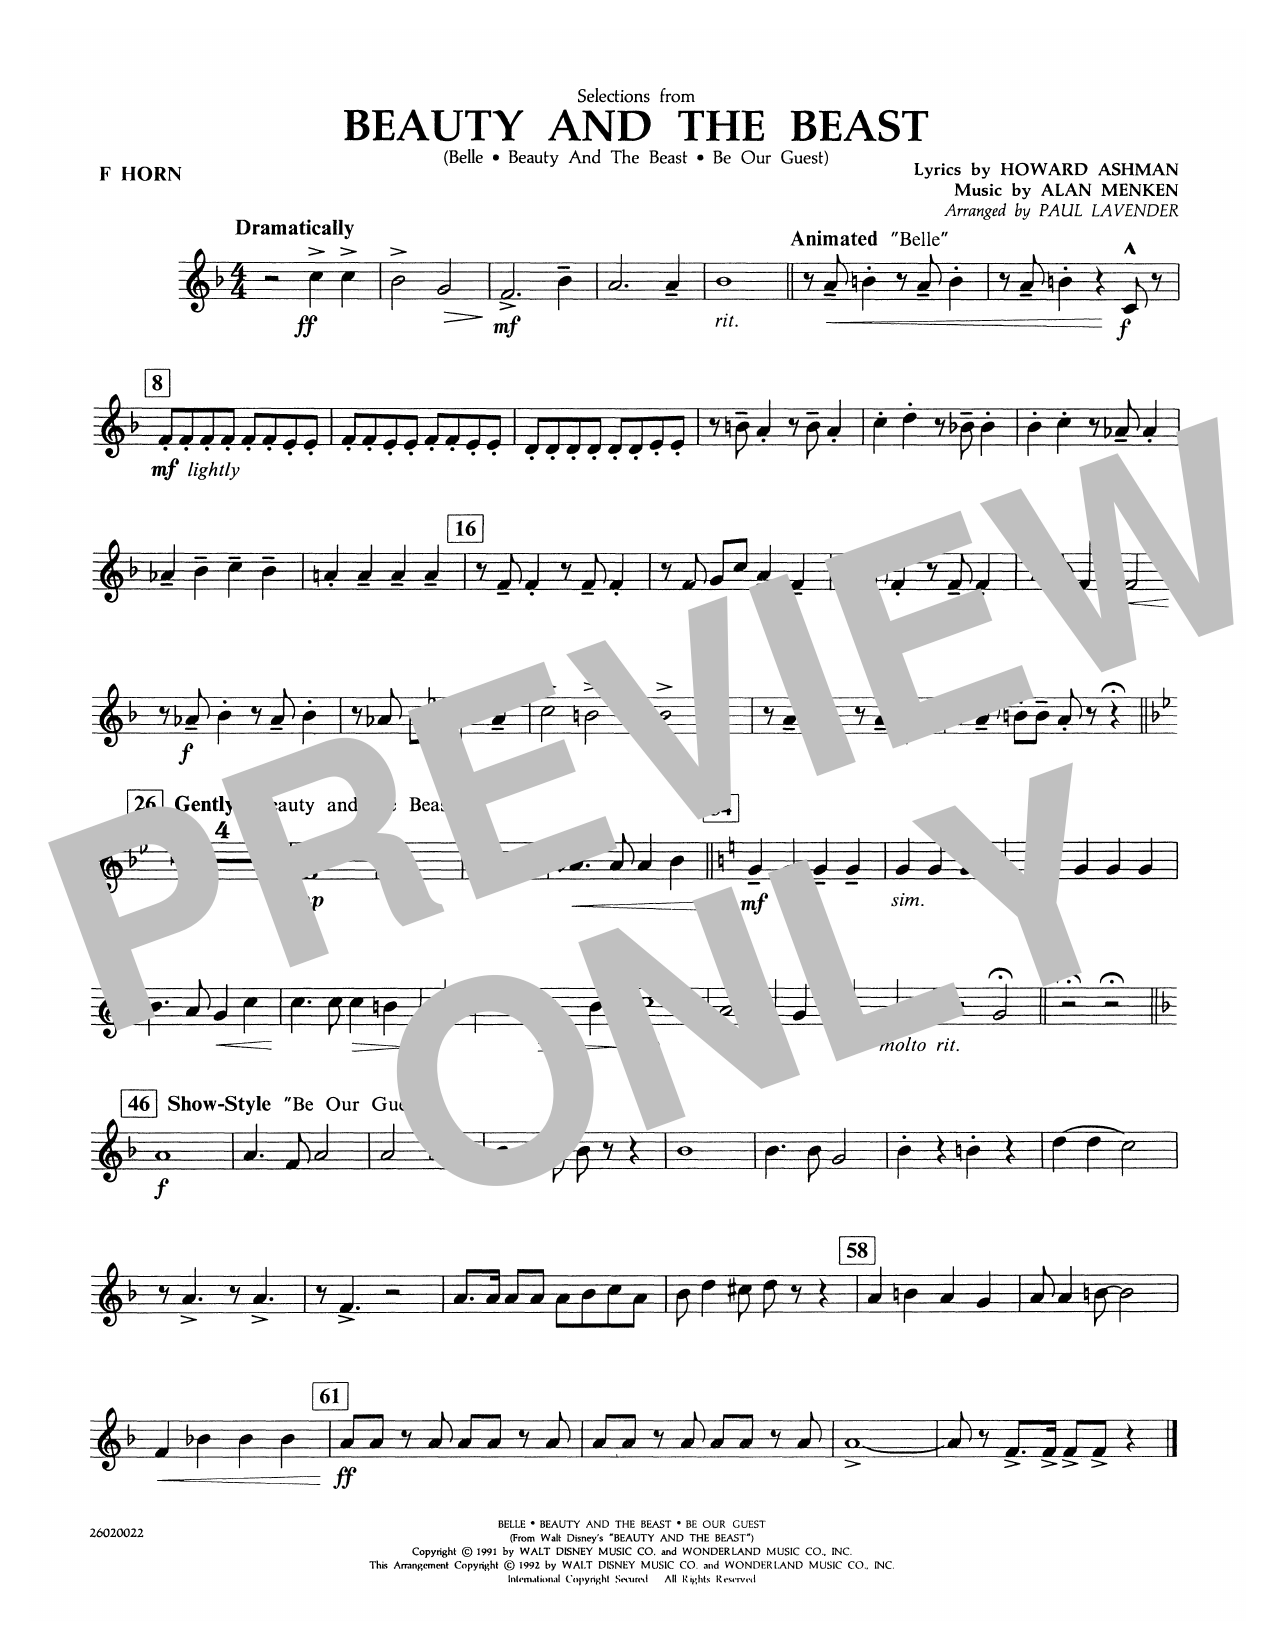 Selections from Beauty and the Beast - F Horn Sheet Music